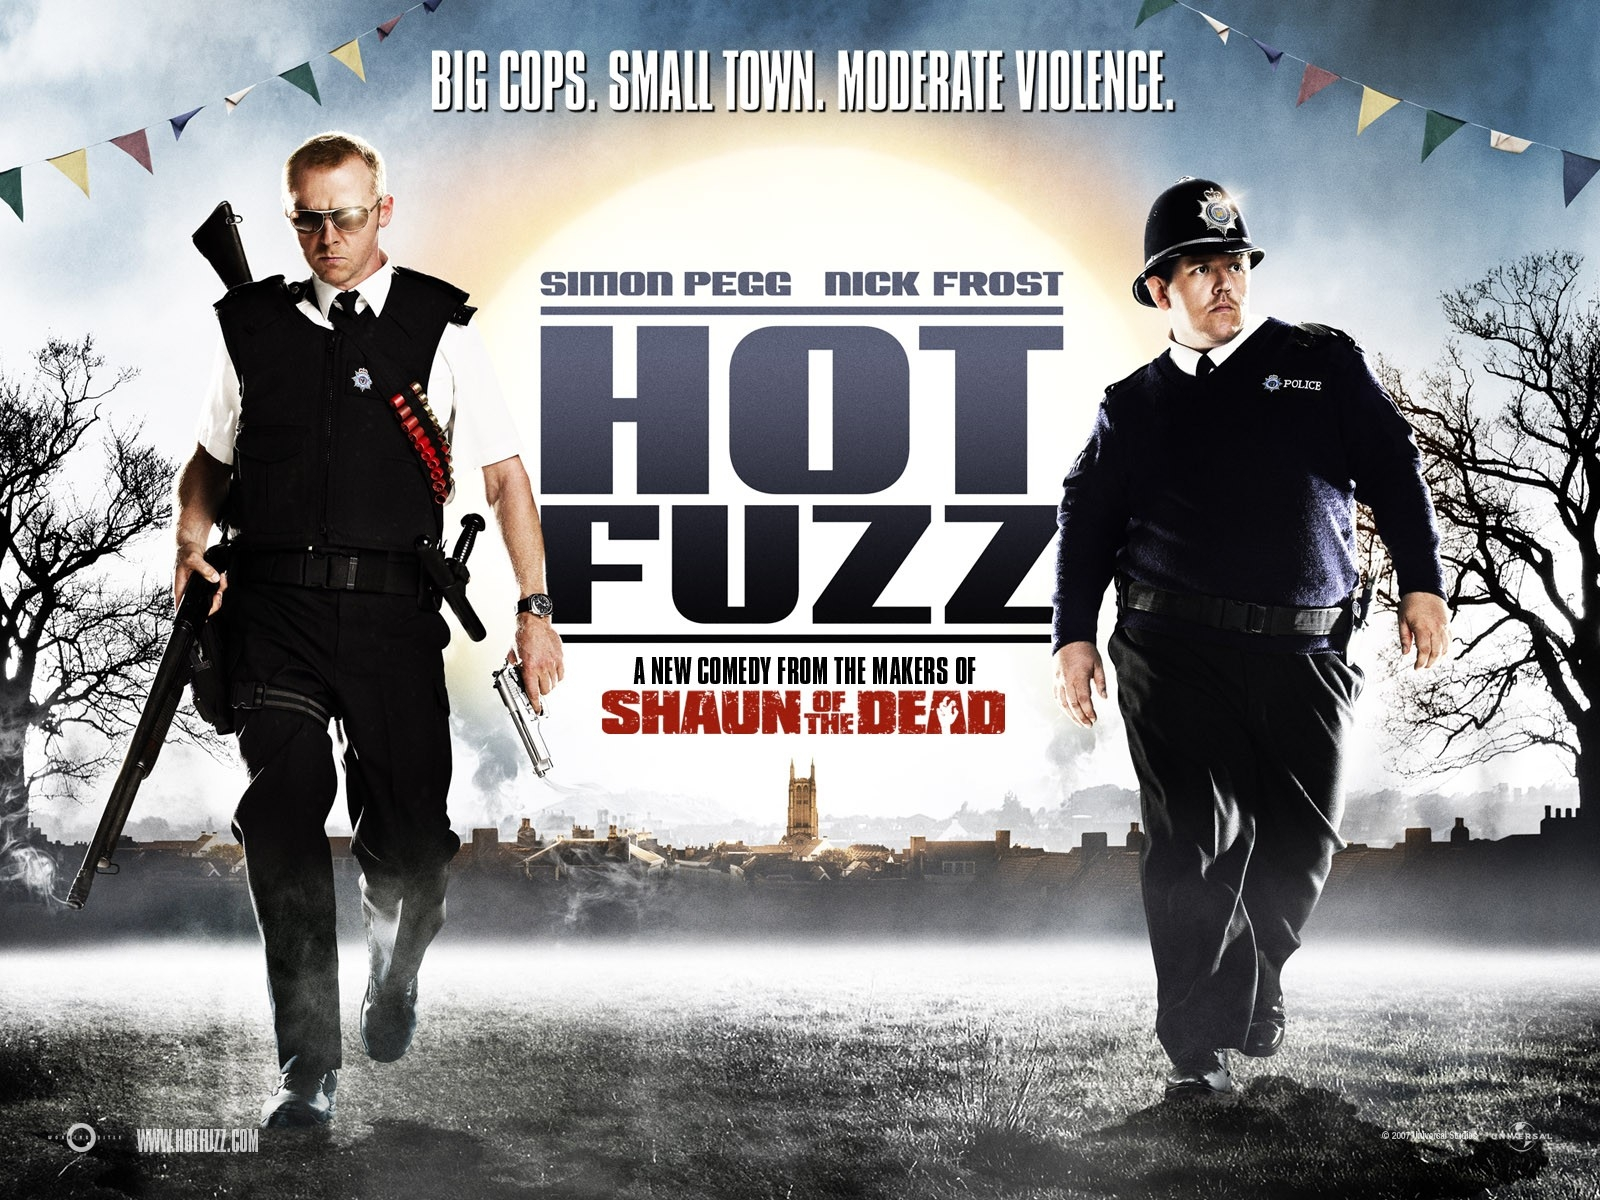 Wallpaper dell'action comedy Hot Fuzz